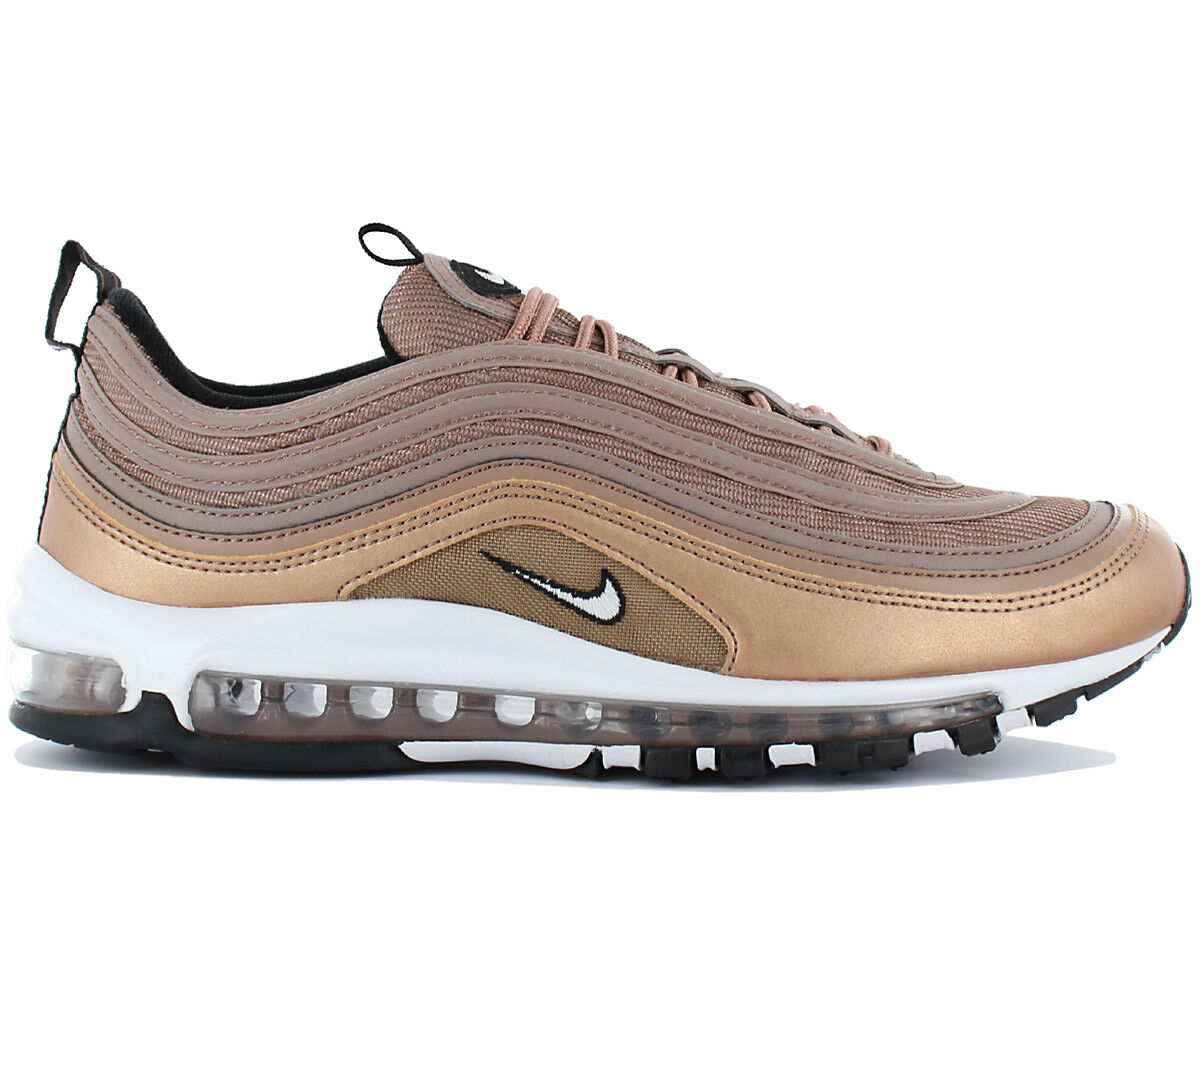 Nike Air Max 97 Men's Sneakers Bronze Shoes Sneakers Leisure 921826-2018 NEW The most popular shoes for men and women